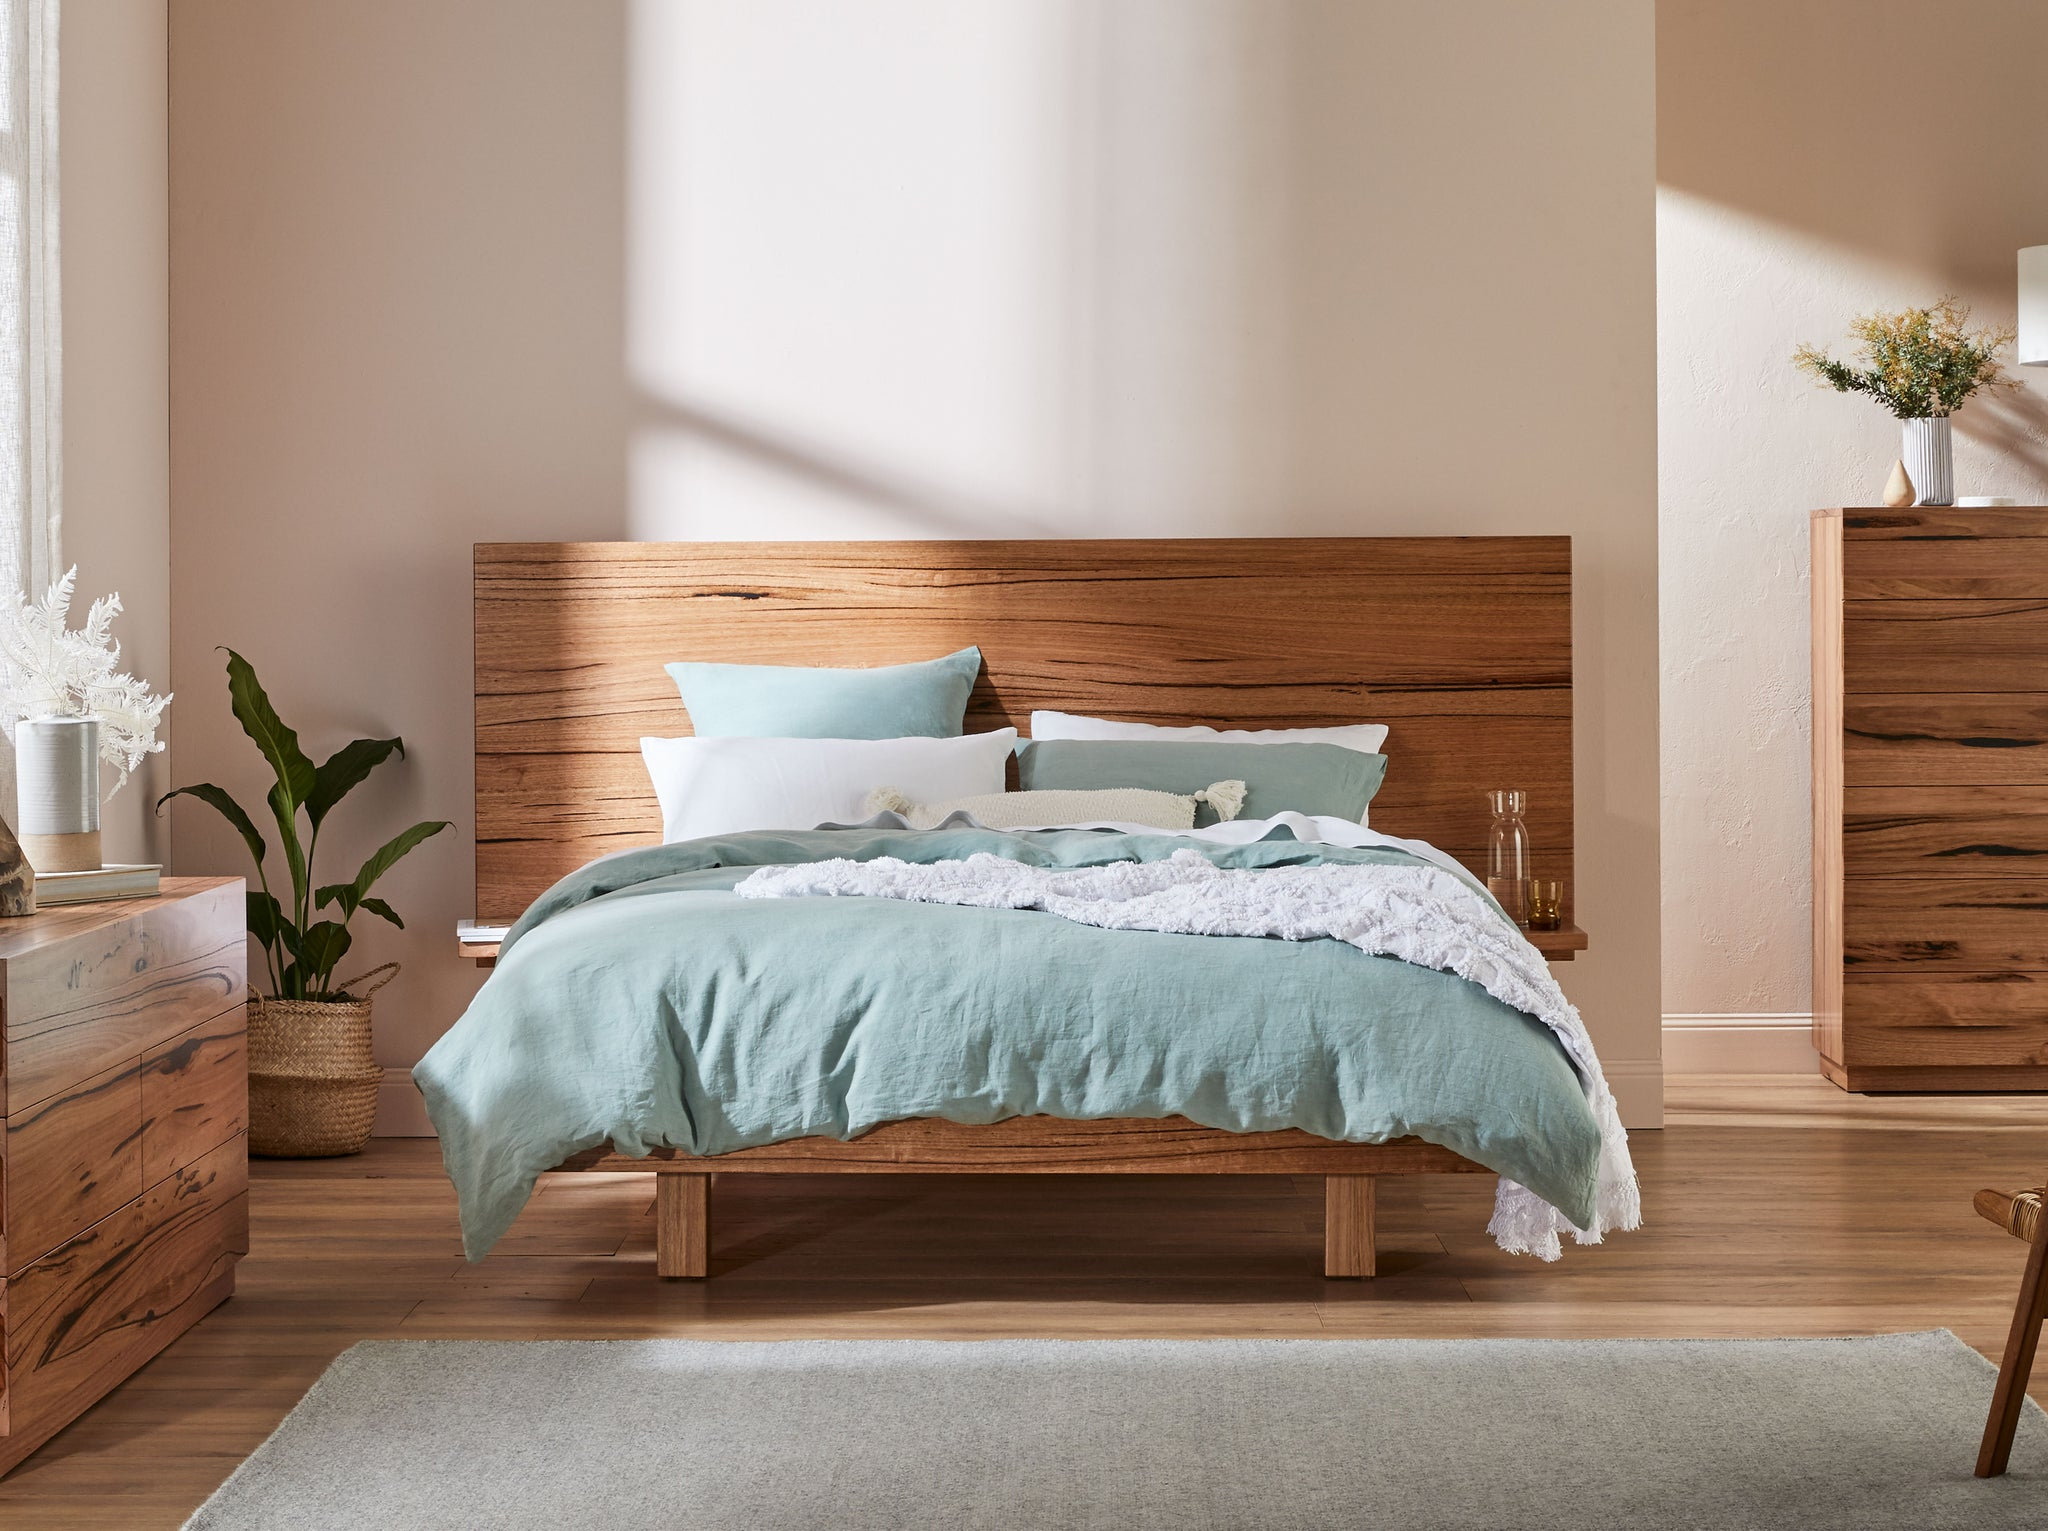 Silhouette Extended Headboard With Shelves & Floating Base